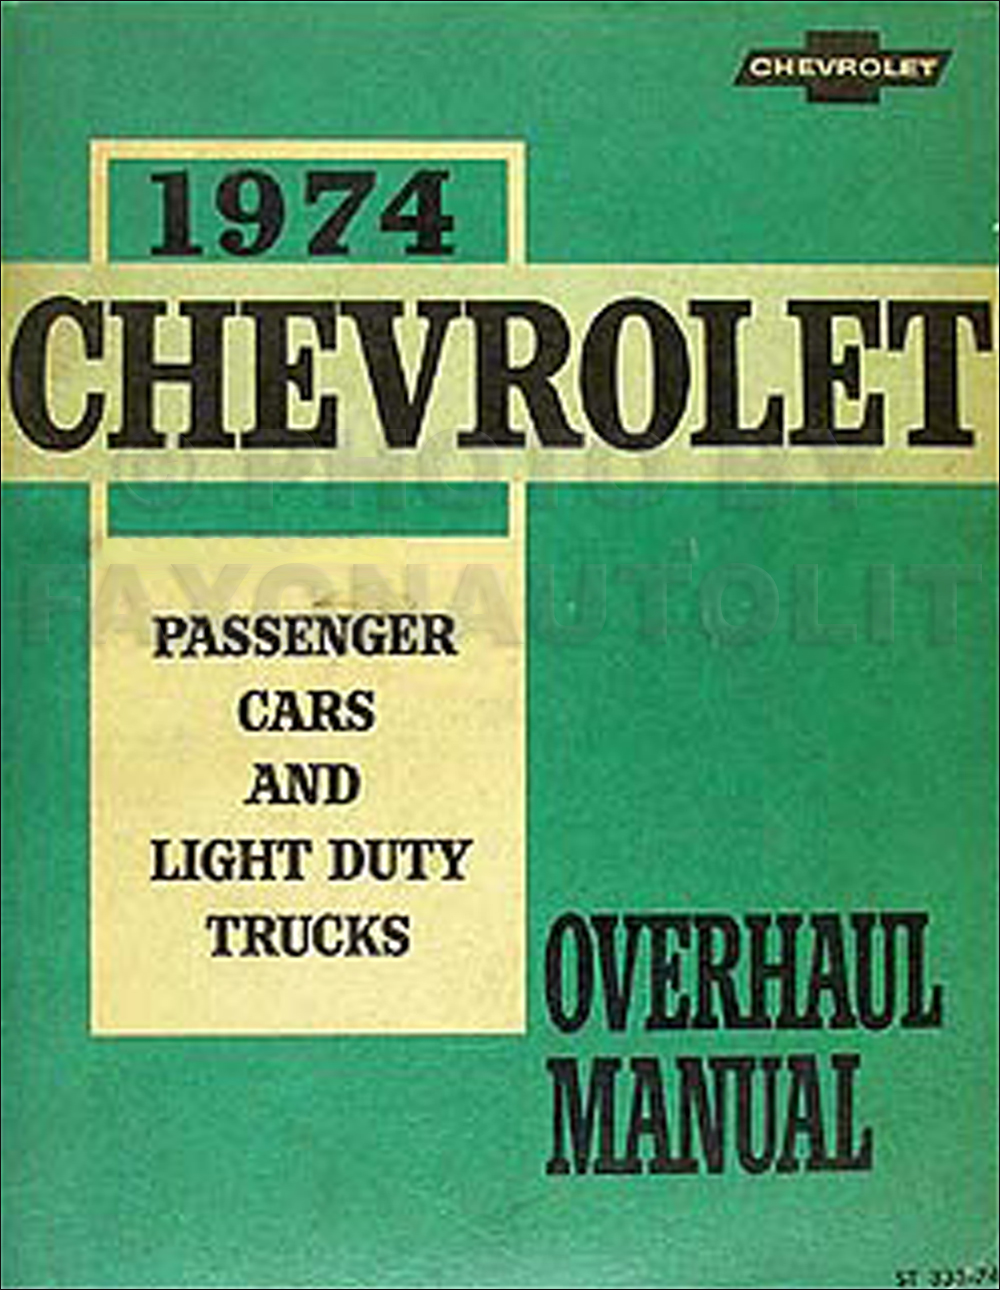 1974 Chevy Car & 10-30 Truck Overhaul Manual Original